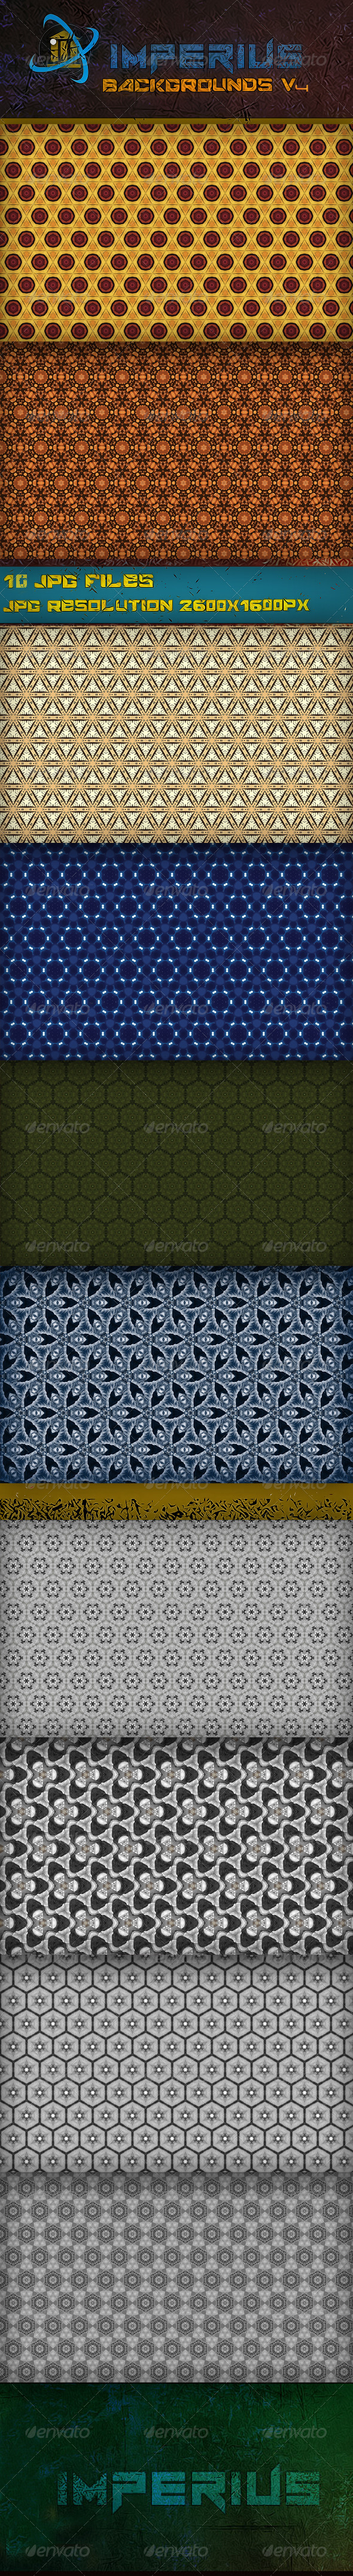 Backgrounds V4 - Patterns Backgrounds